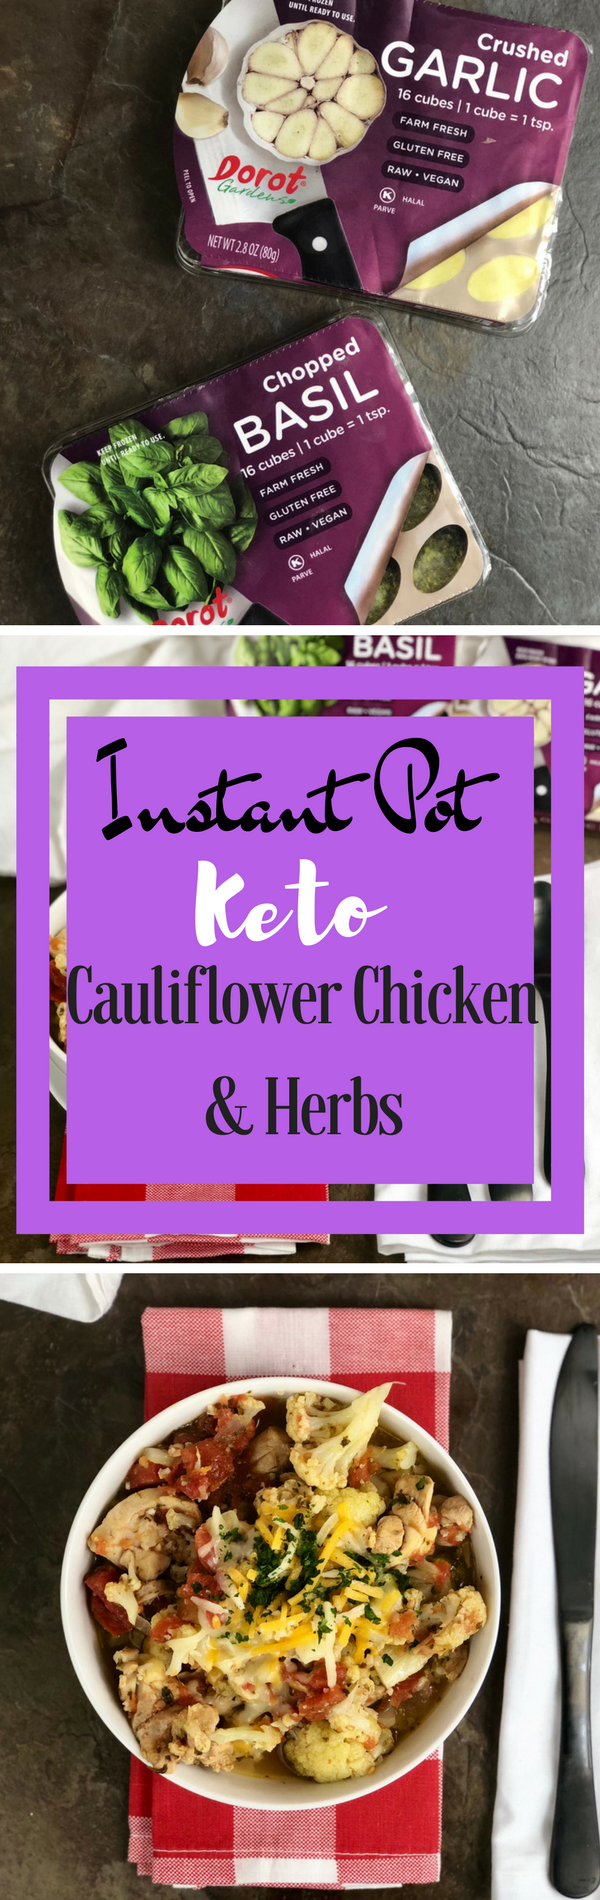 This Instant Pot Keto Cauliflower Chicken & Herbs is perfect for anyone who is looking for a flavorful dish while watching their carb intake. This meal is a breeze to whip up in your Instant Pot and is great for using the leftovers to take for lunches during the week to work. You have some colby jack cheese, a variety of herbs that really help add some great flavor to this keto dish. Your whole family will be asking for seconds on this hearty and healthy dish. #instantpot #keto